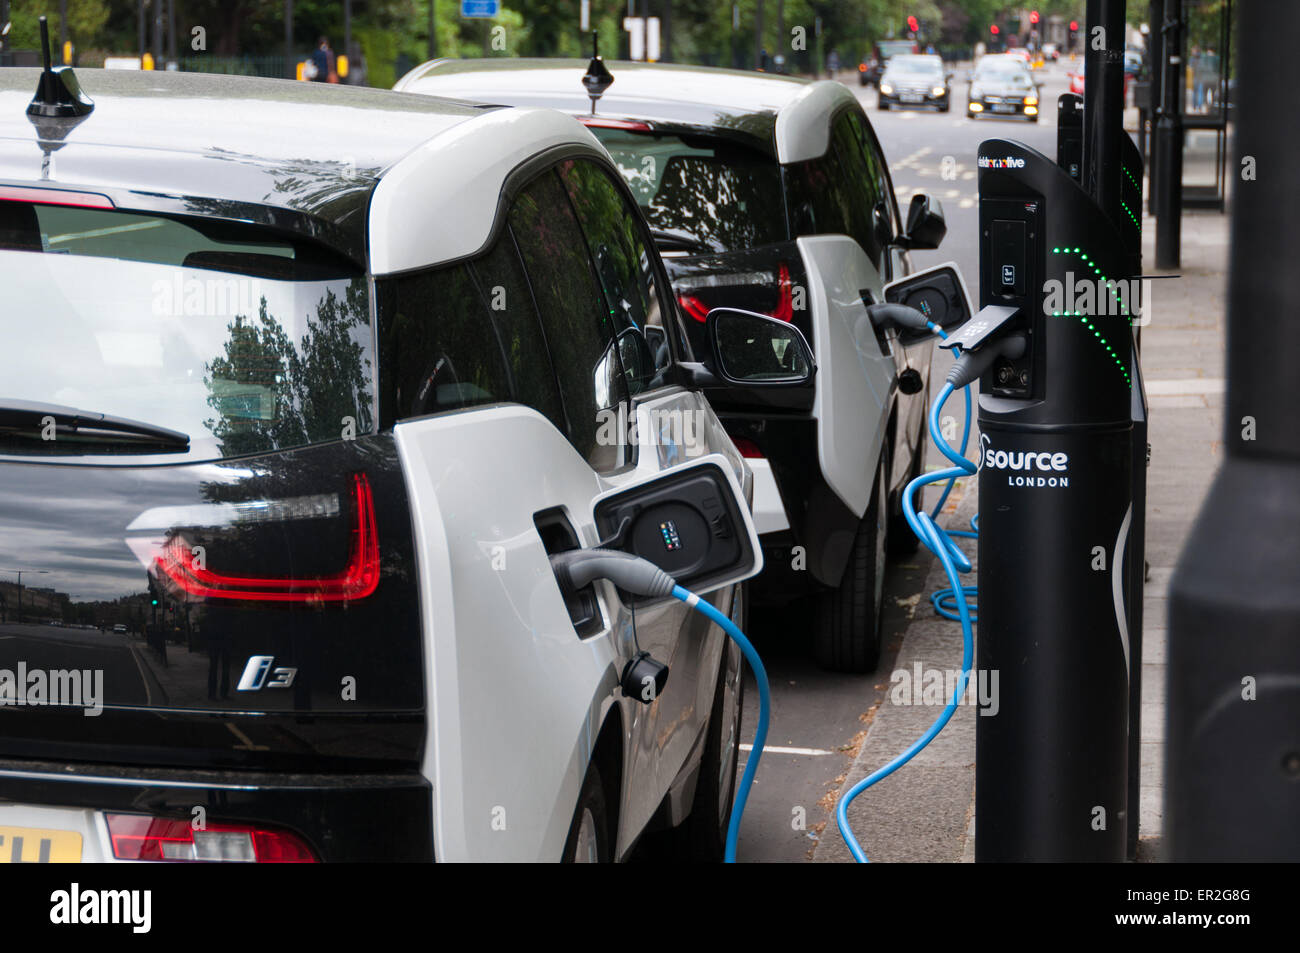 electric-bmw-i3-cars-plugged-into-electric-charging-bays-in-london-ER2G8G.jpg